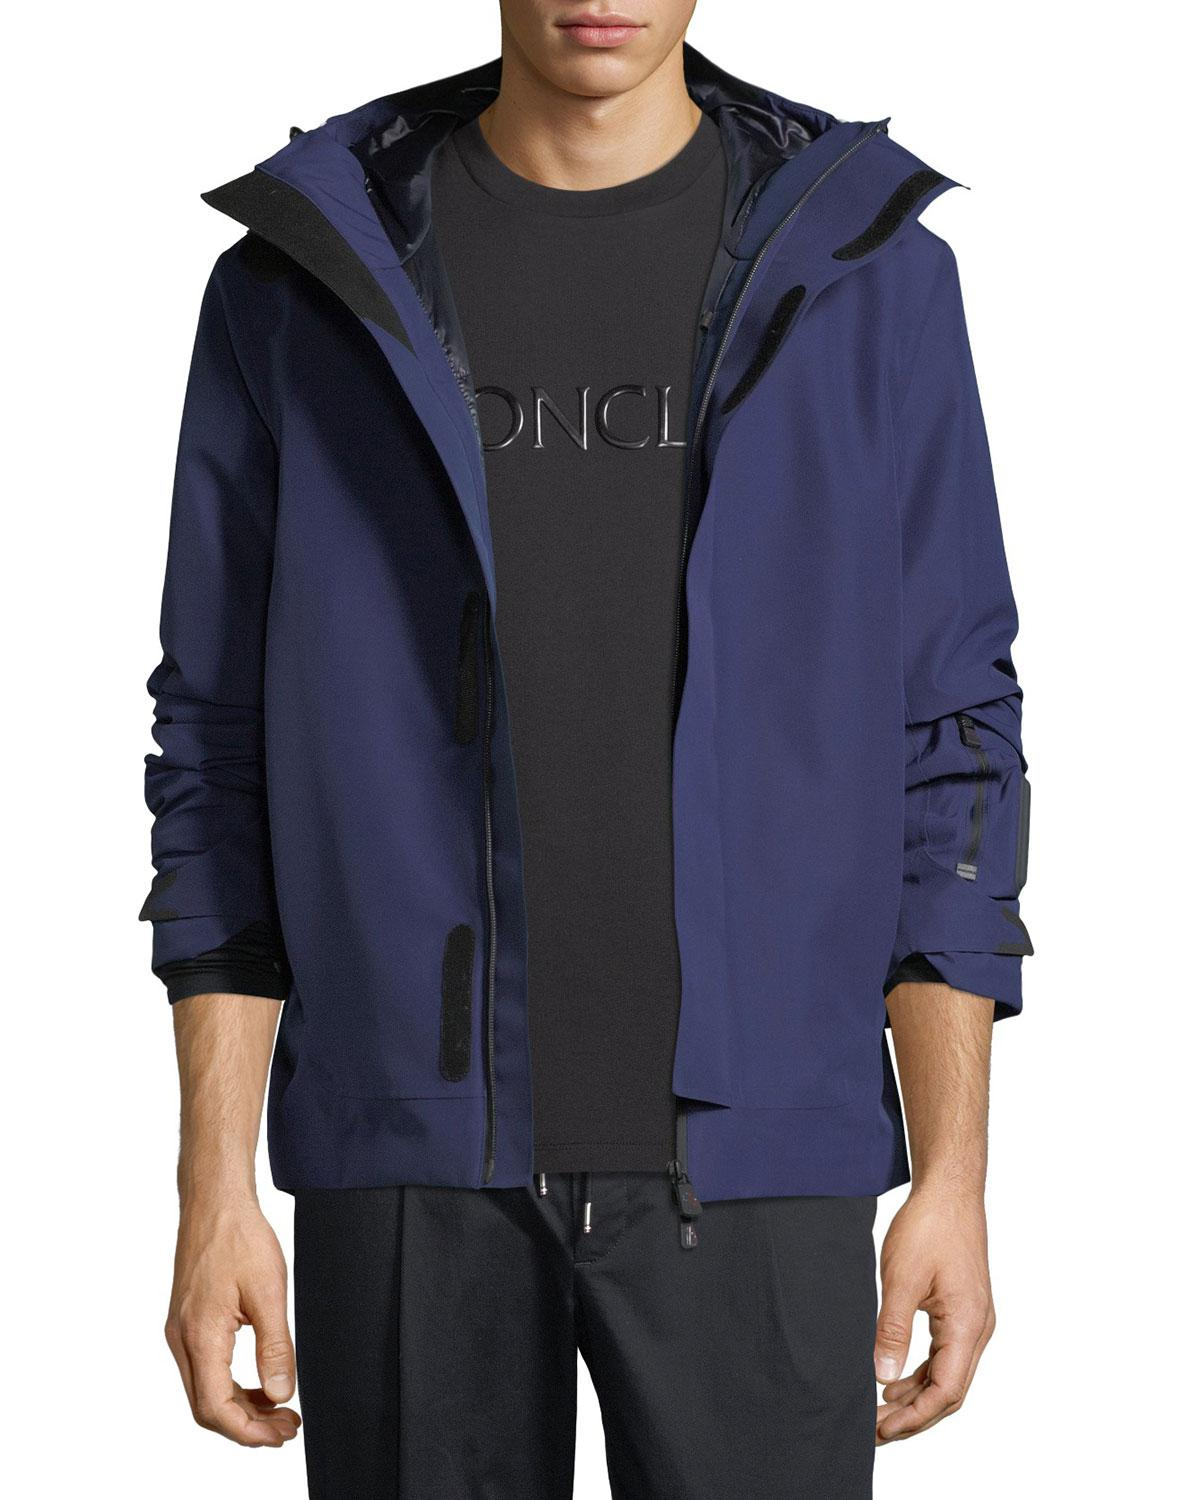 Lyst - Moncler Grenoble Megeve High-performance Hooded Jacket in ... f0c7a68a78a